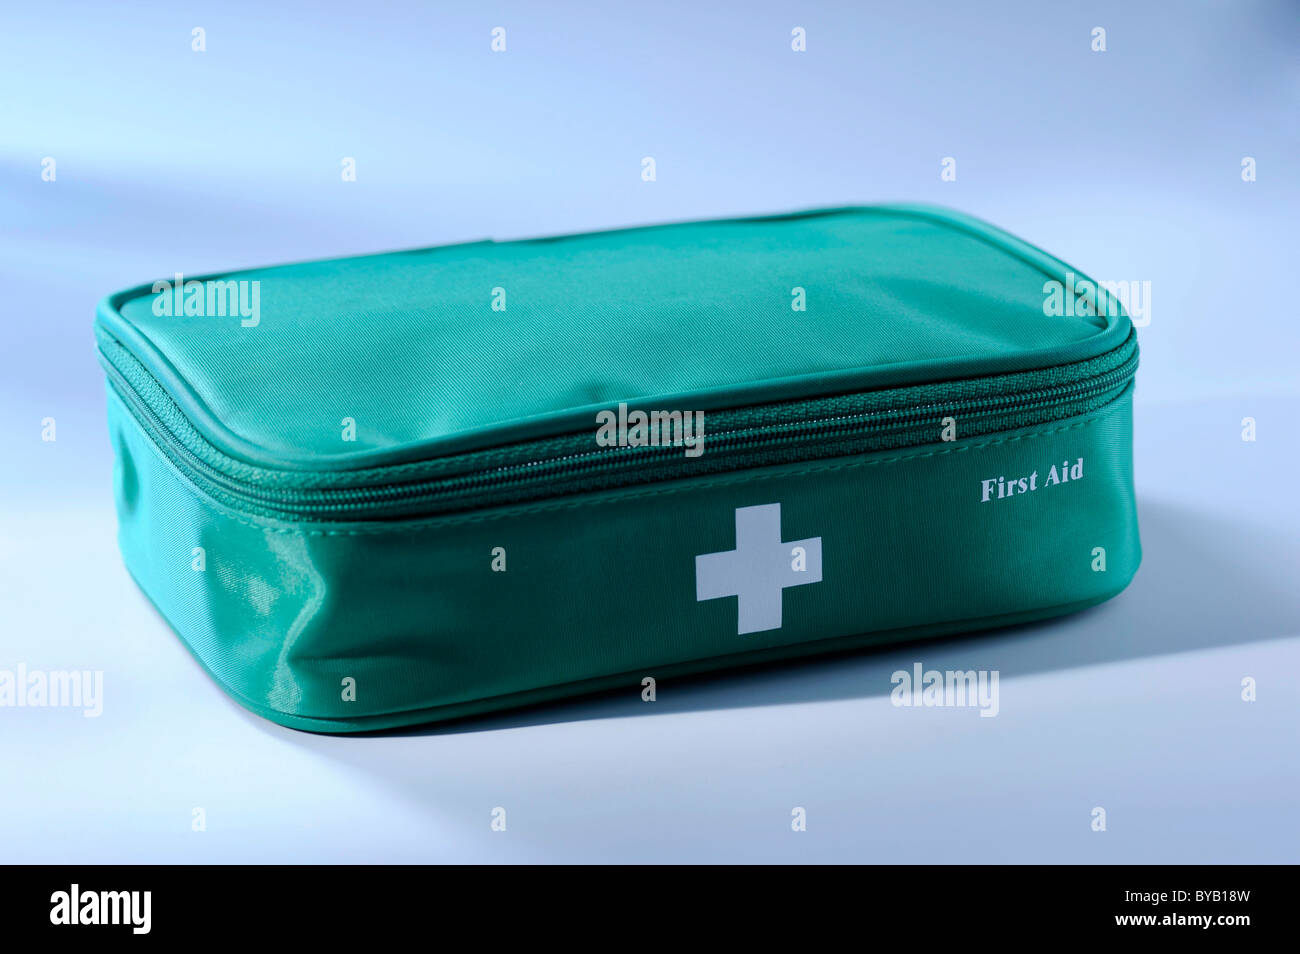 First-aid kit - Stock Image